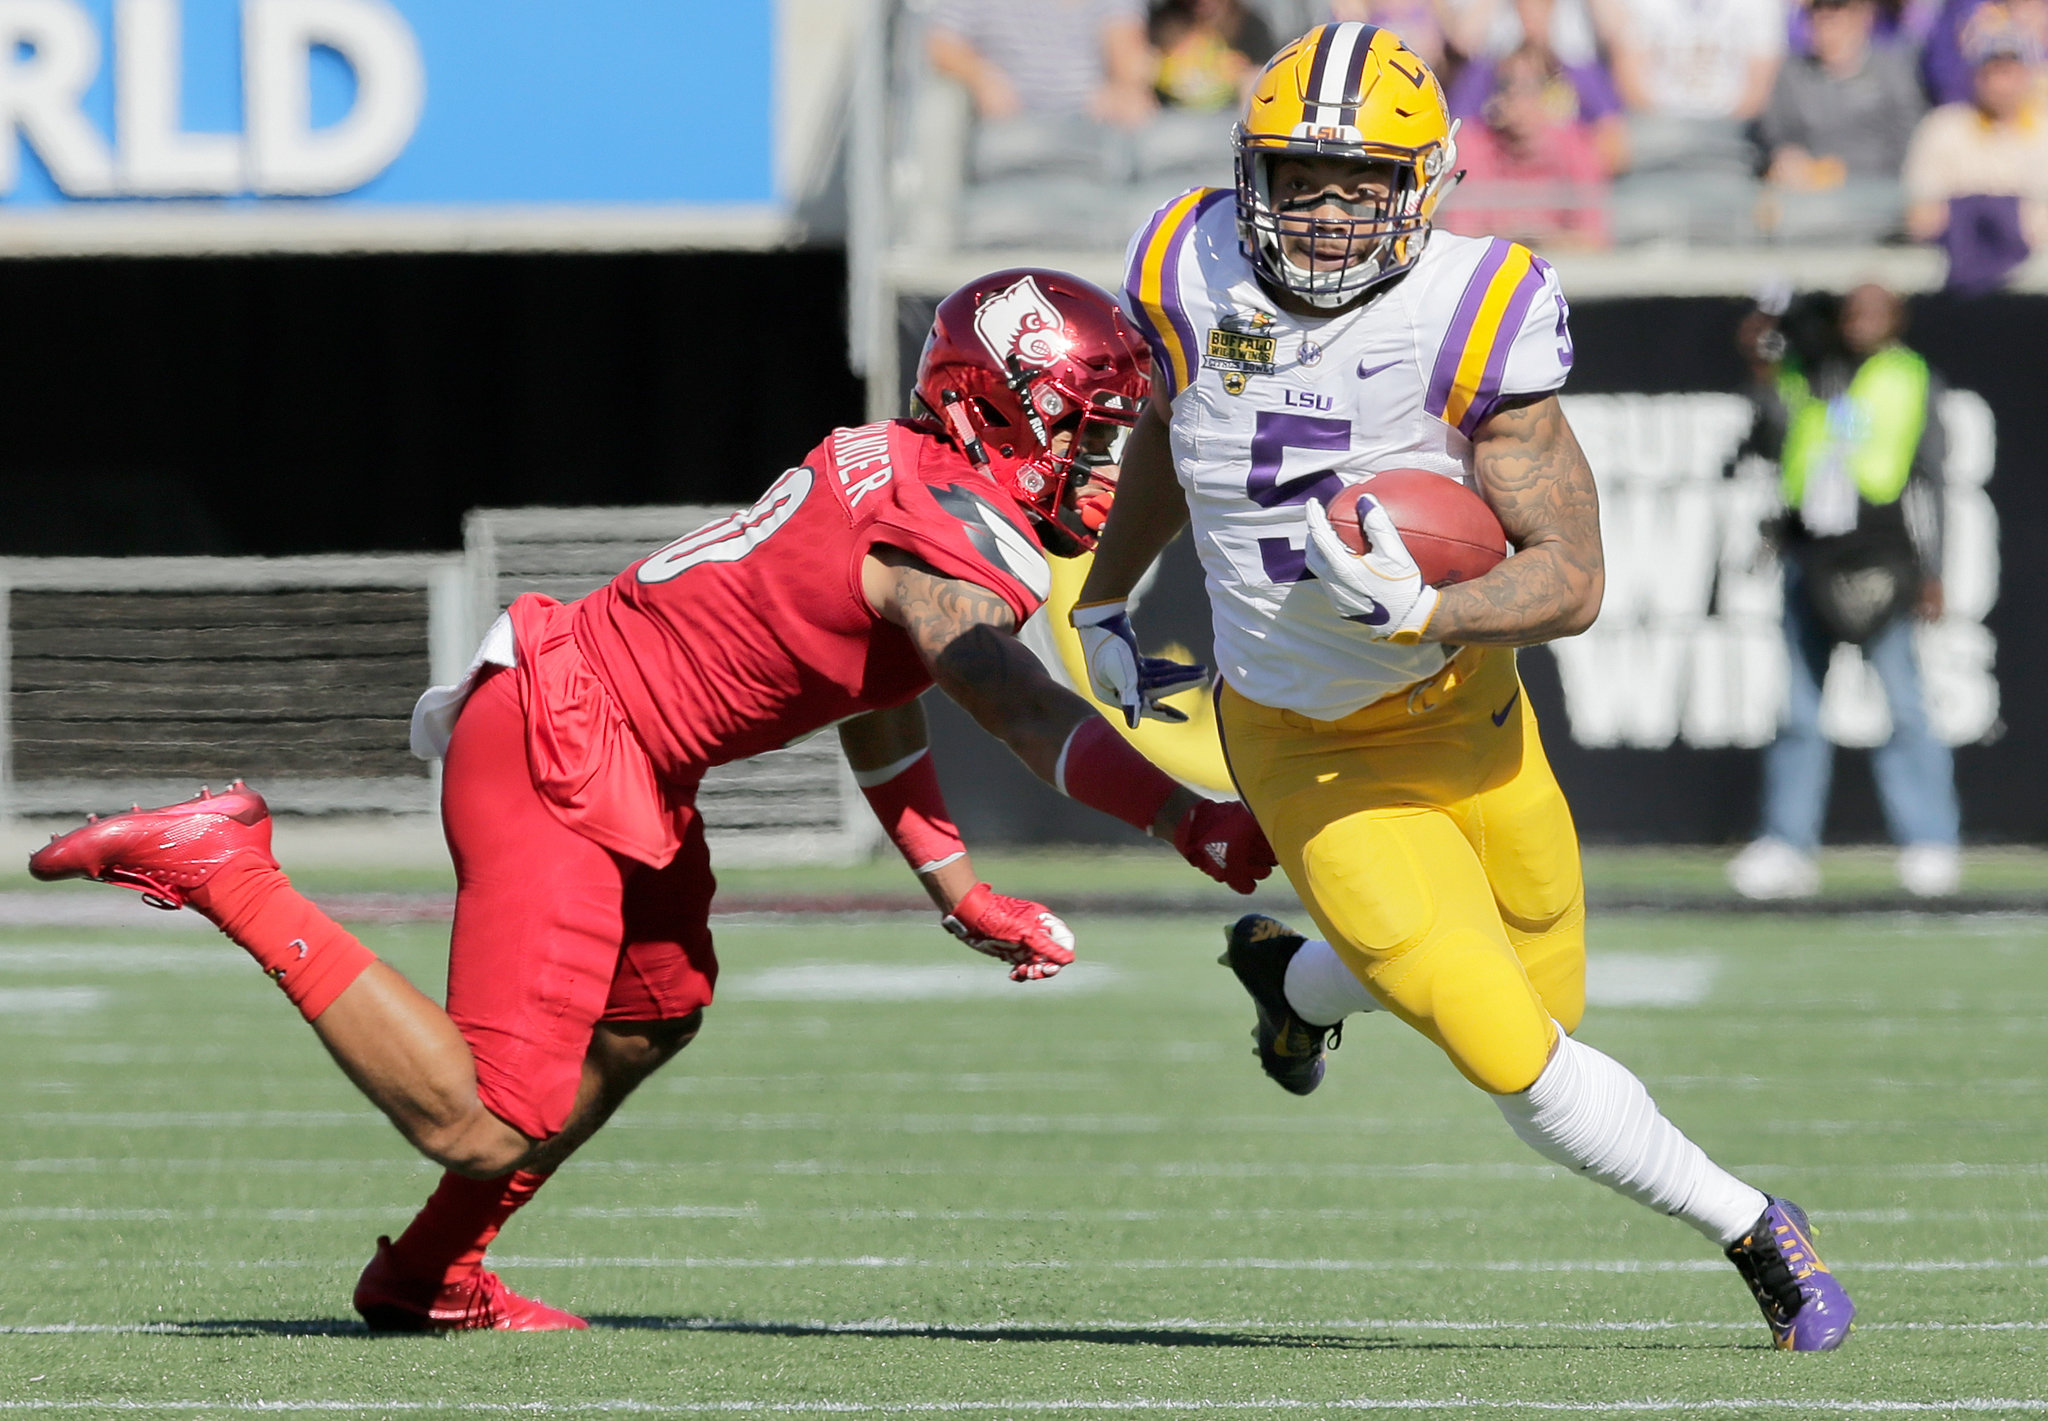 LSU to play Notre Dame in the Citrus Bowl